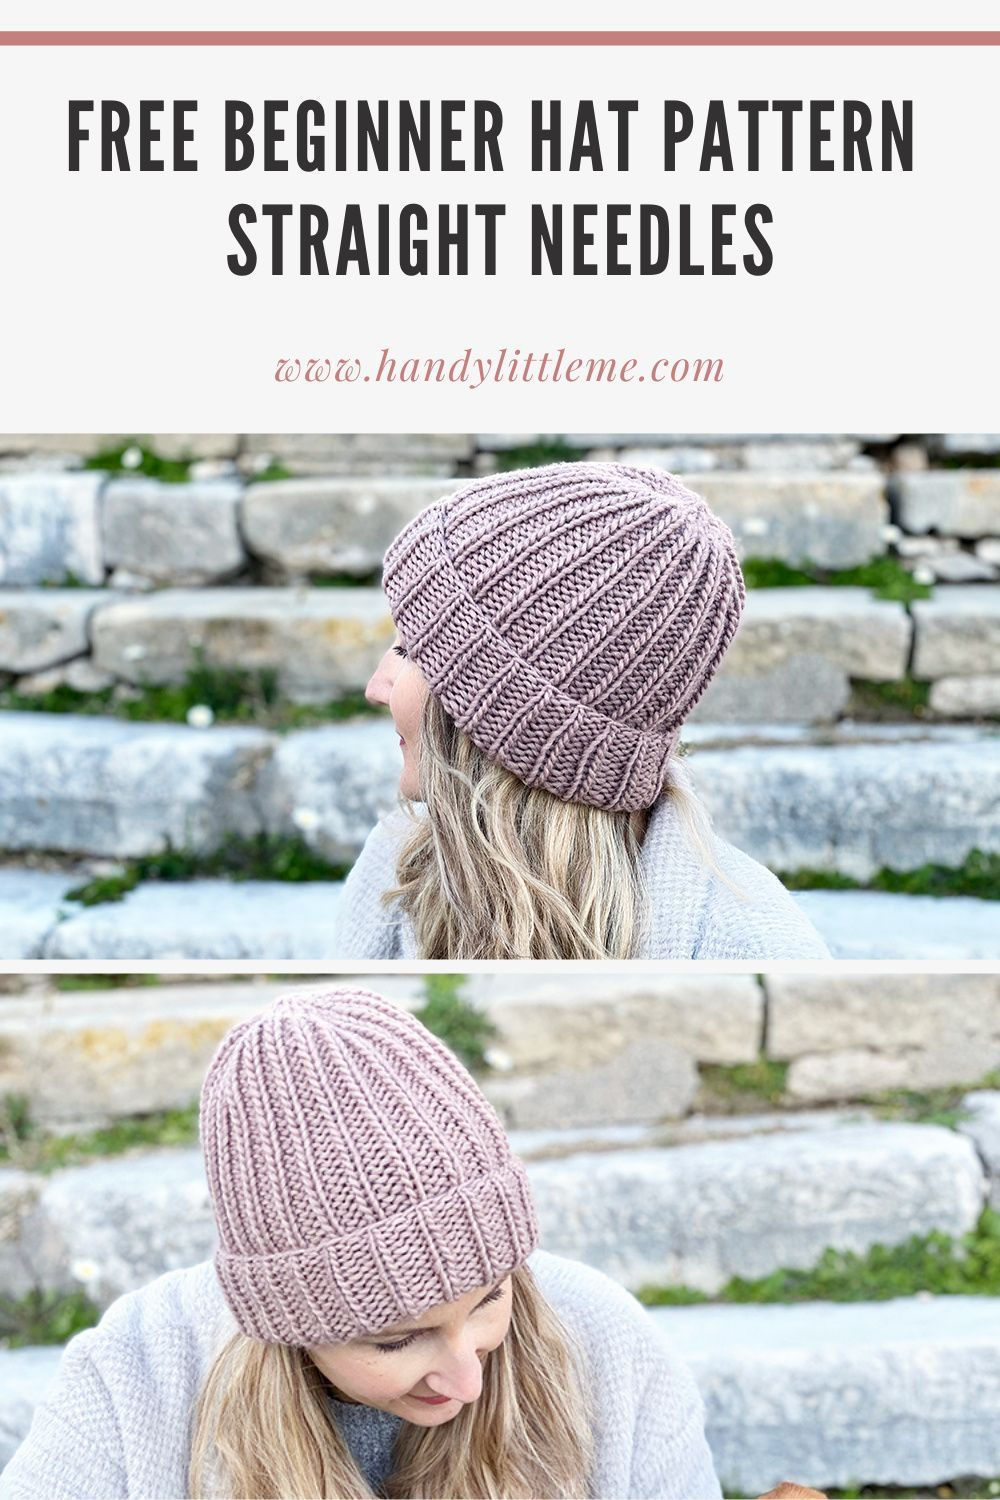 How To Knit A Hat With Straight Needles In 2021 Hat Pattern Easy Knitting Projects Knitted Hats